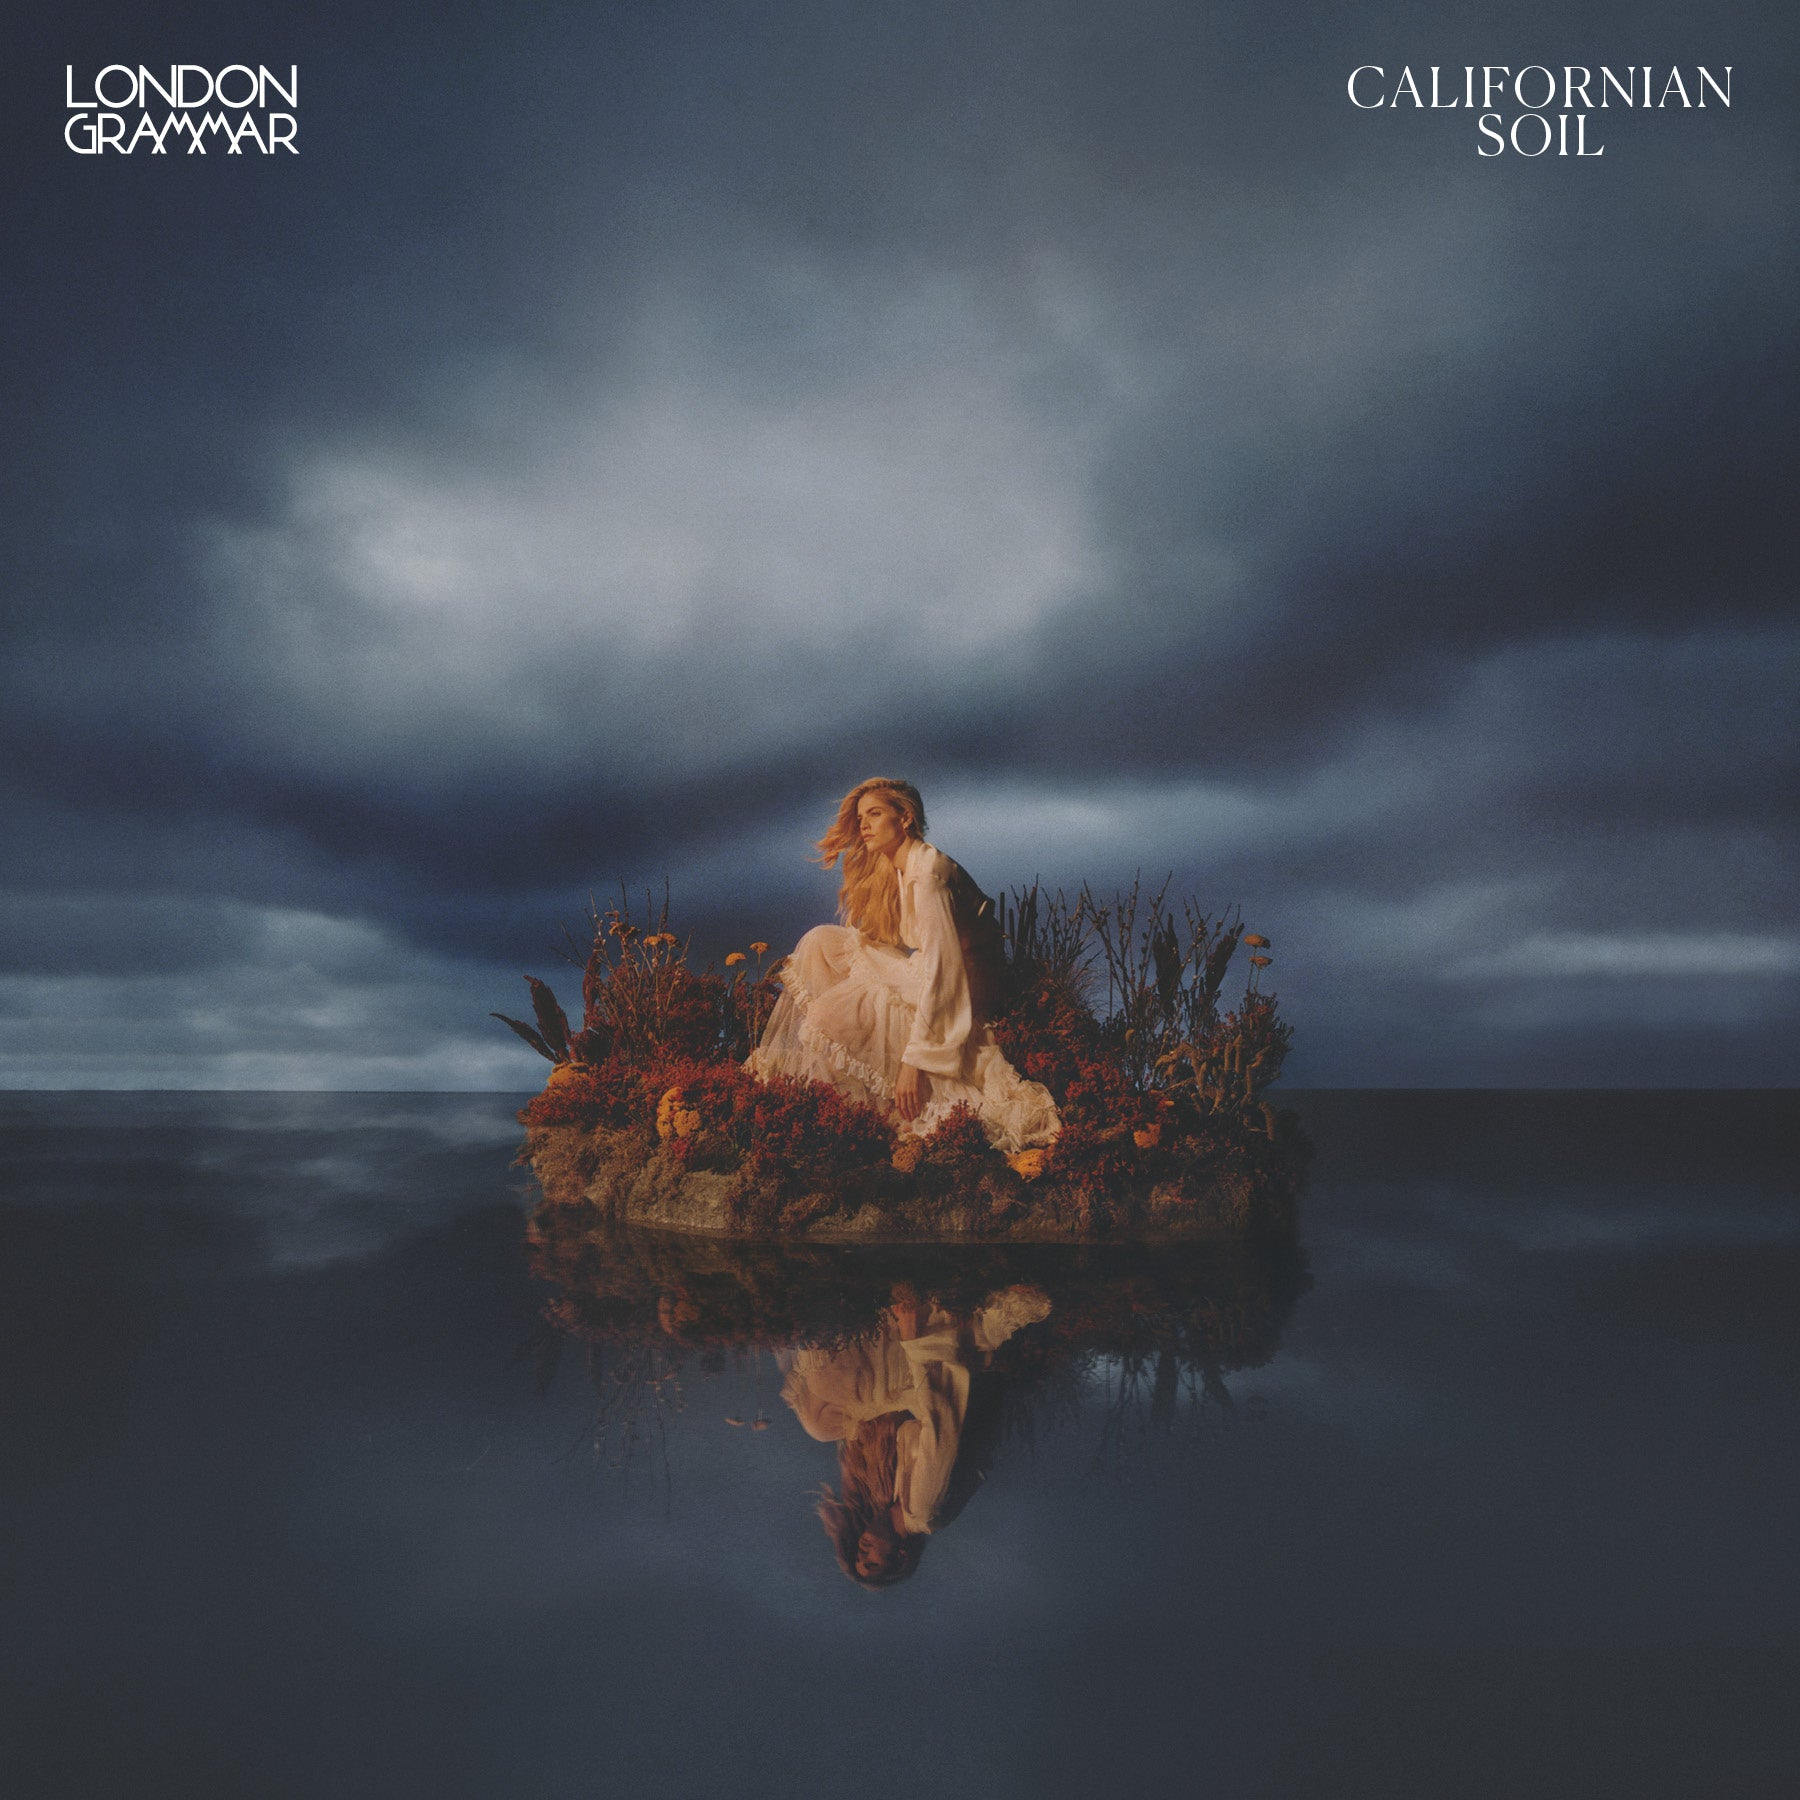 London Grammar - Californian Soil (Black Vinyl)